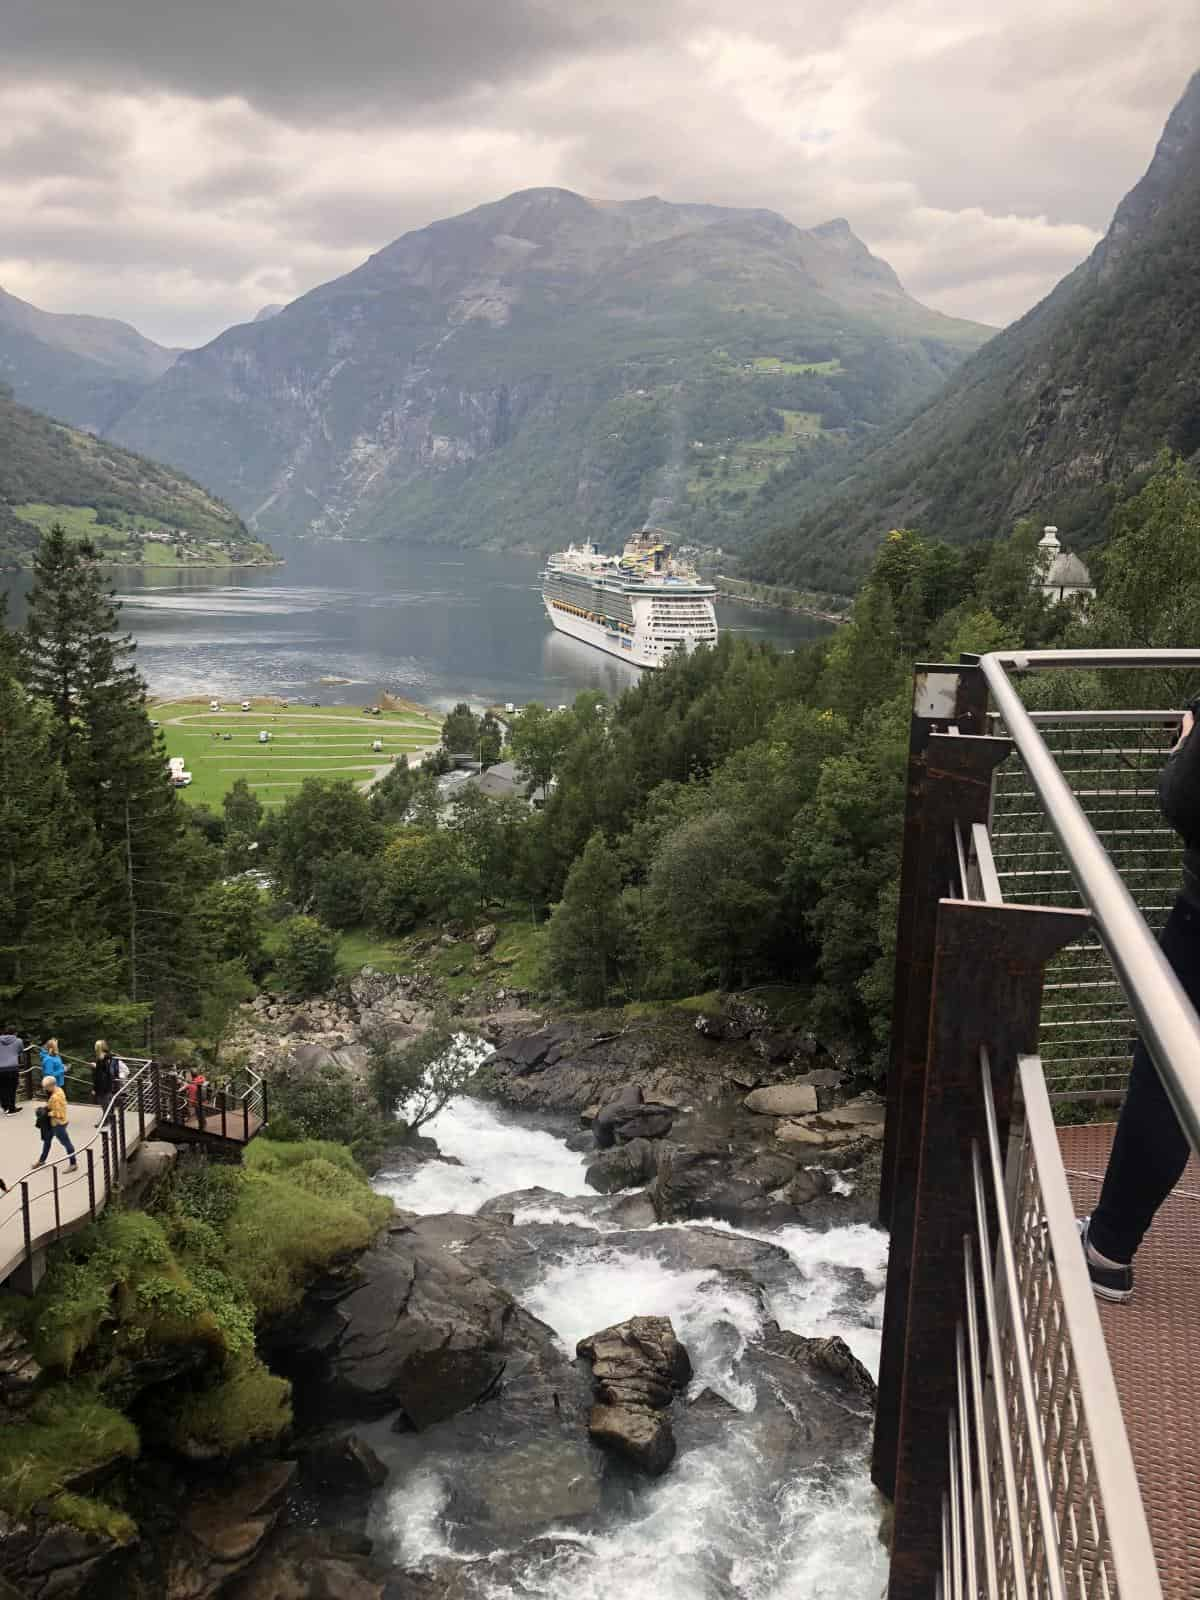 One of the easiest waterfalls in Geirangerfjord is the Fossevandring and it is a 10 minute walk from the port.